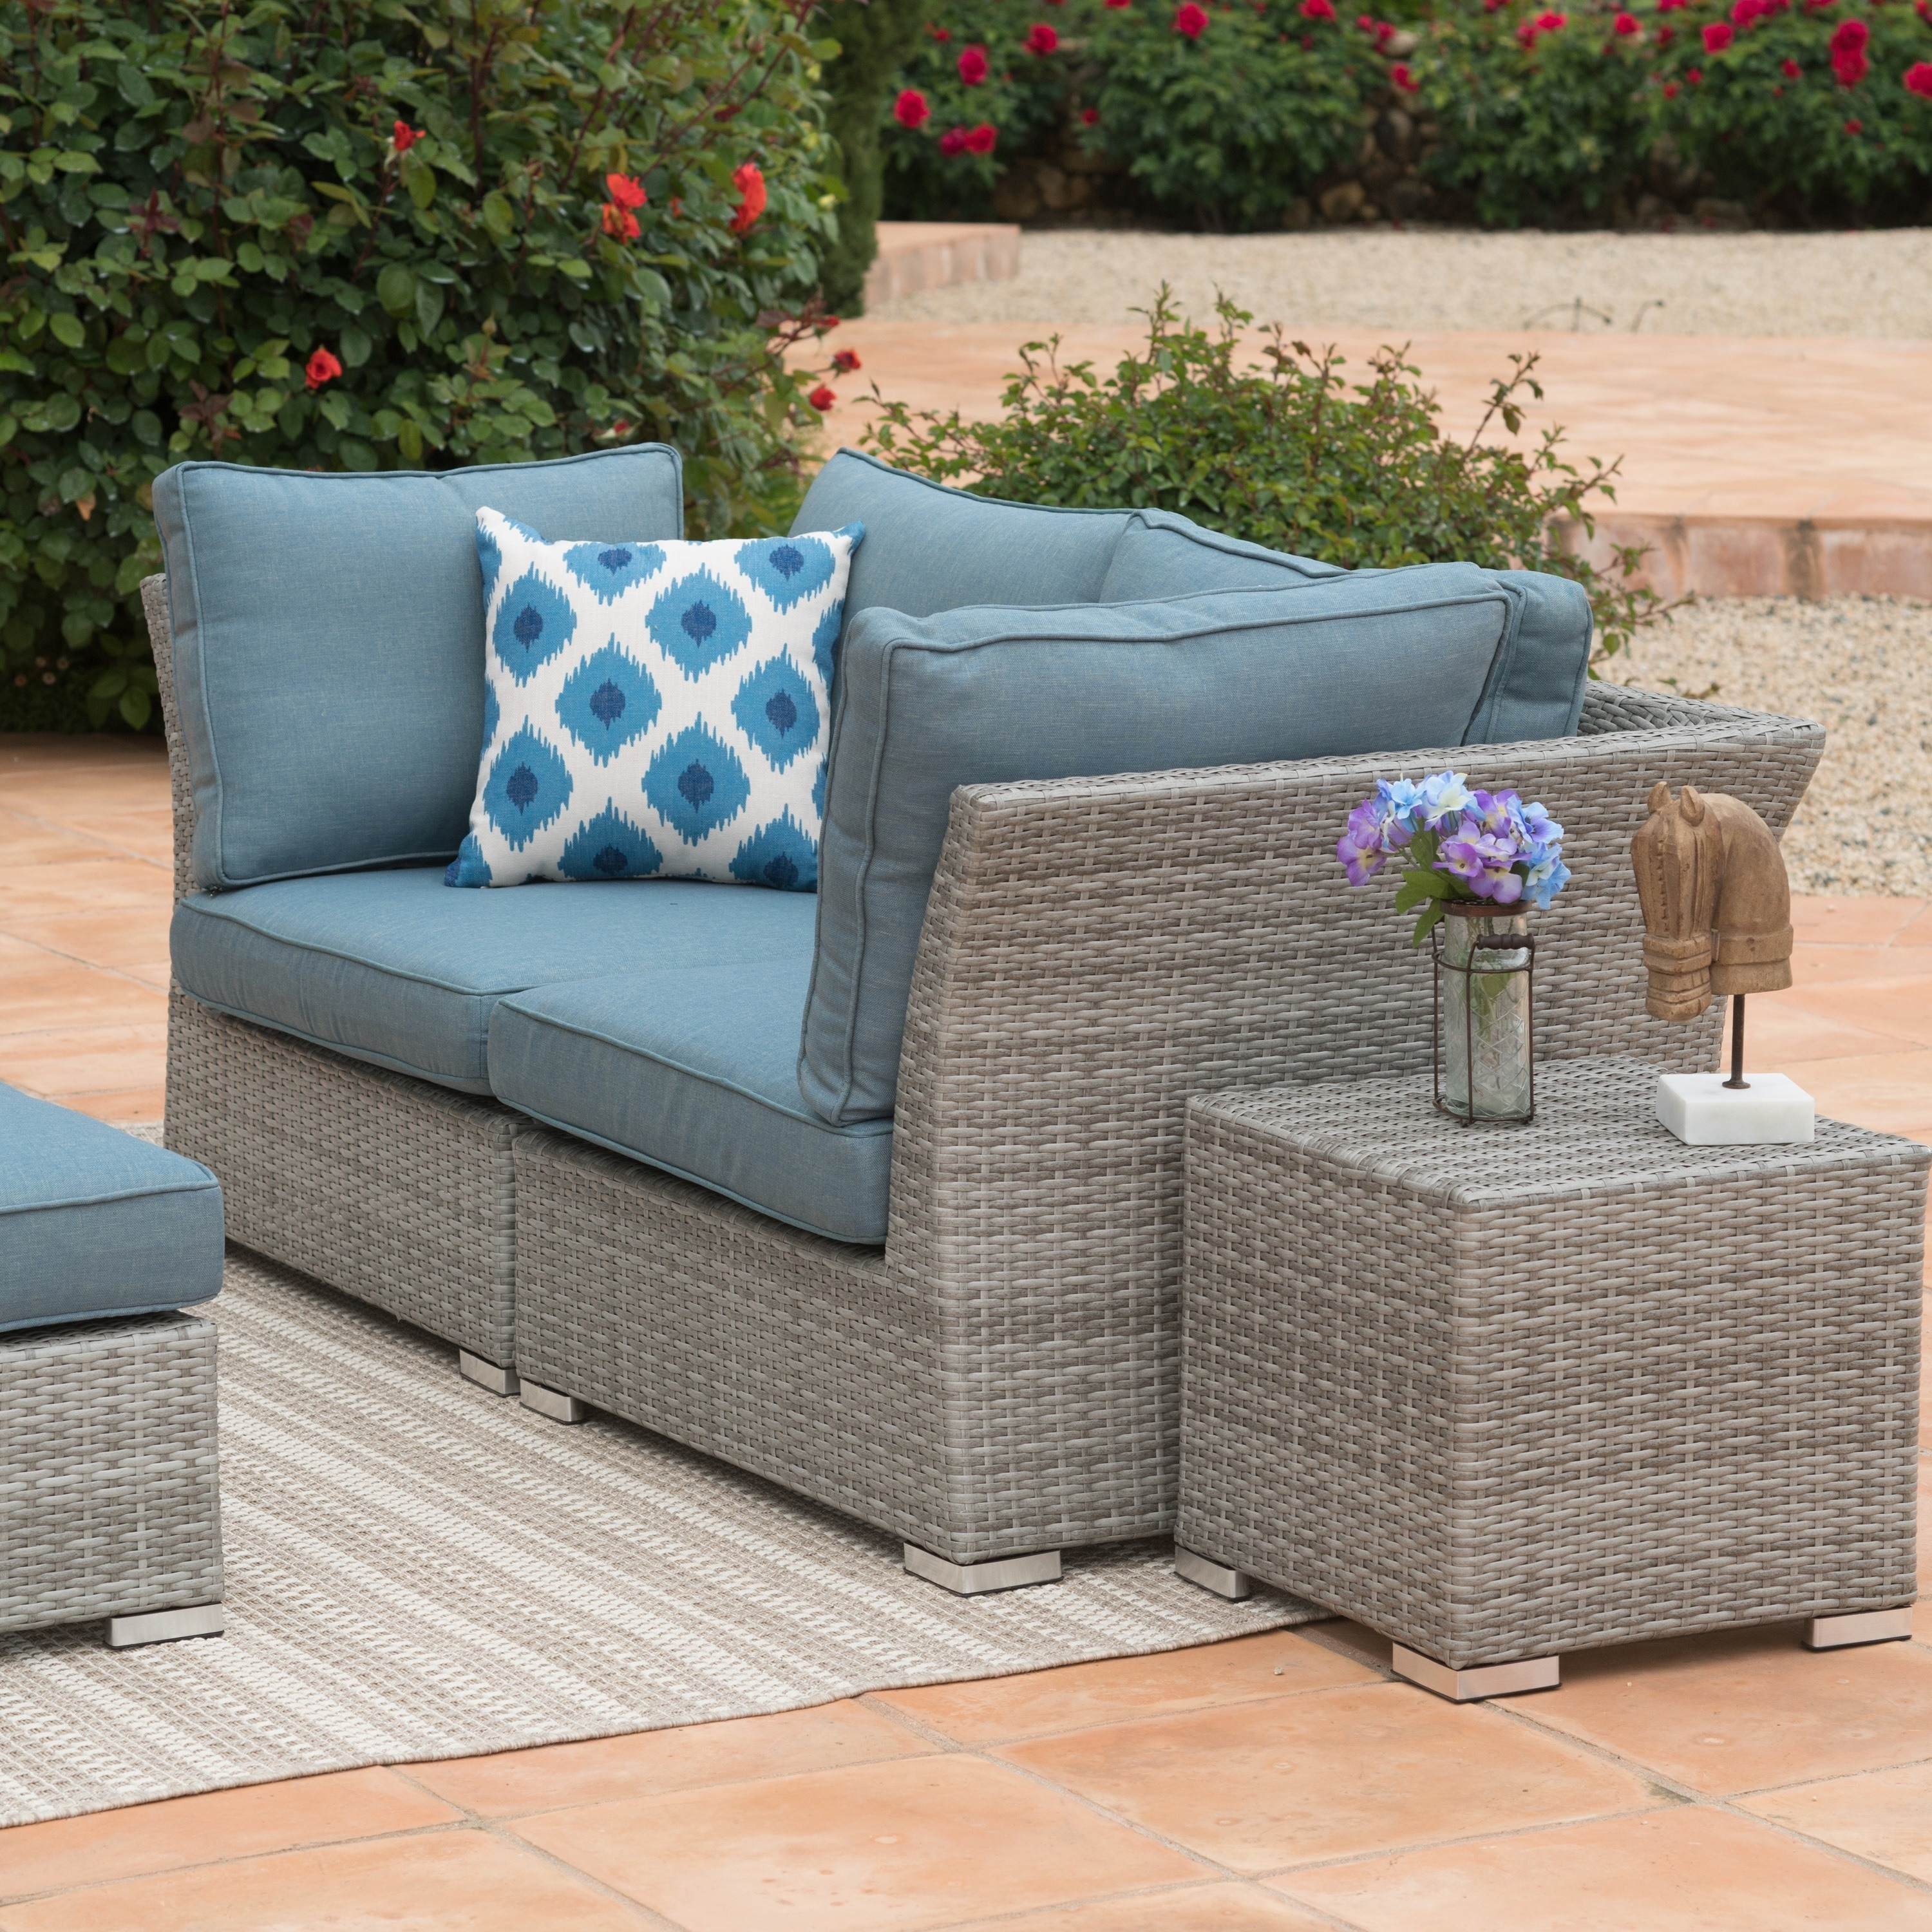 Corvus 8 Piece Grey Wicker Patio Furniture Set With Blue Cushions